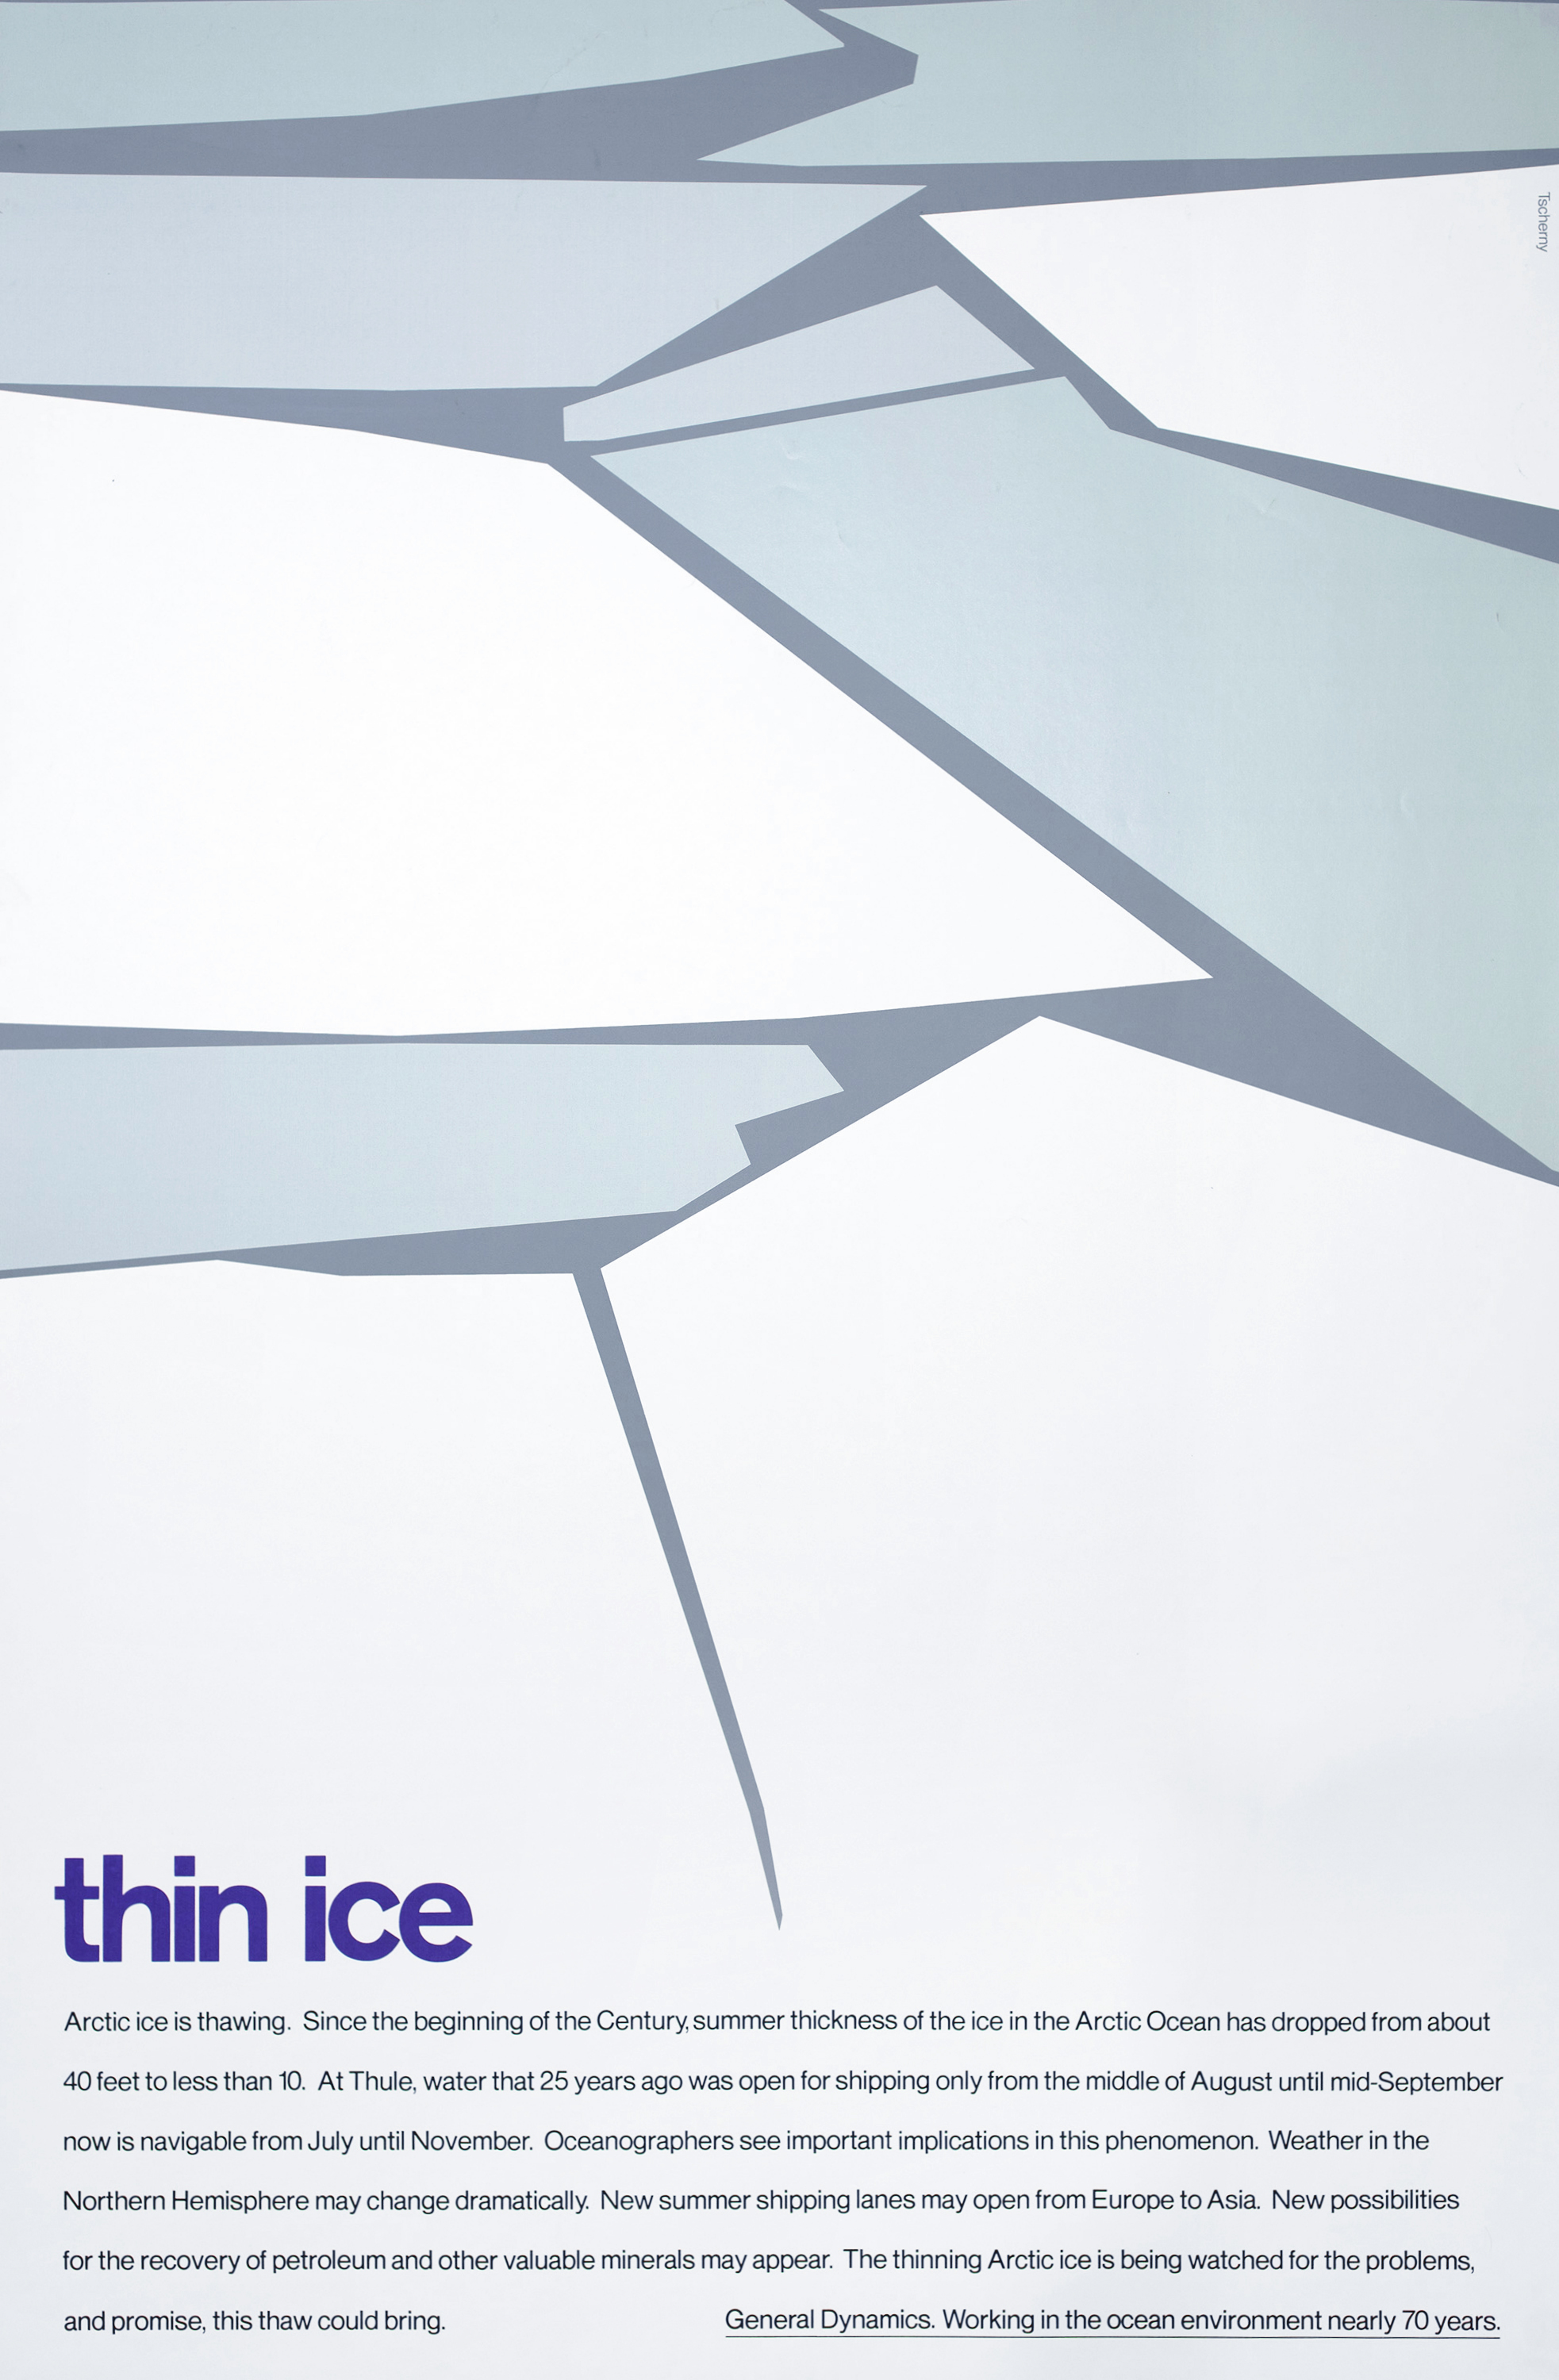 "Simple, abstract blue and white shapes suggesting ice floes with the title, ""thin ice"" below in purple along with a paragraph of supplementary text."